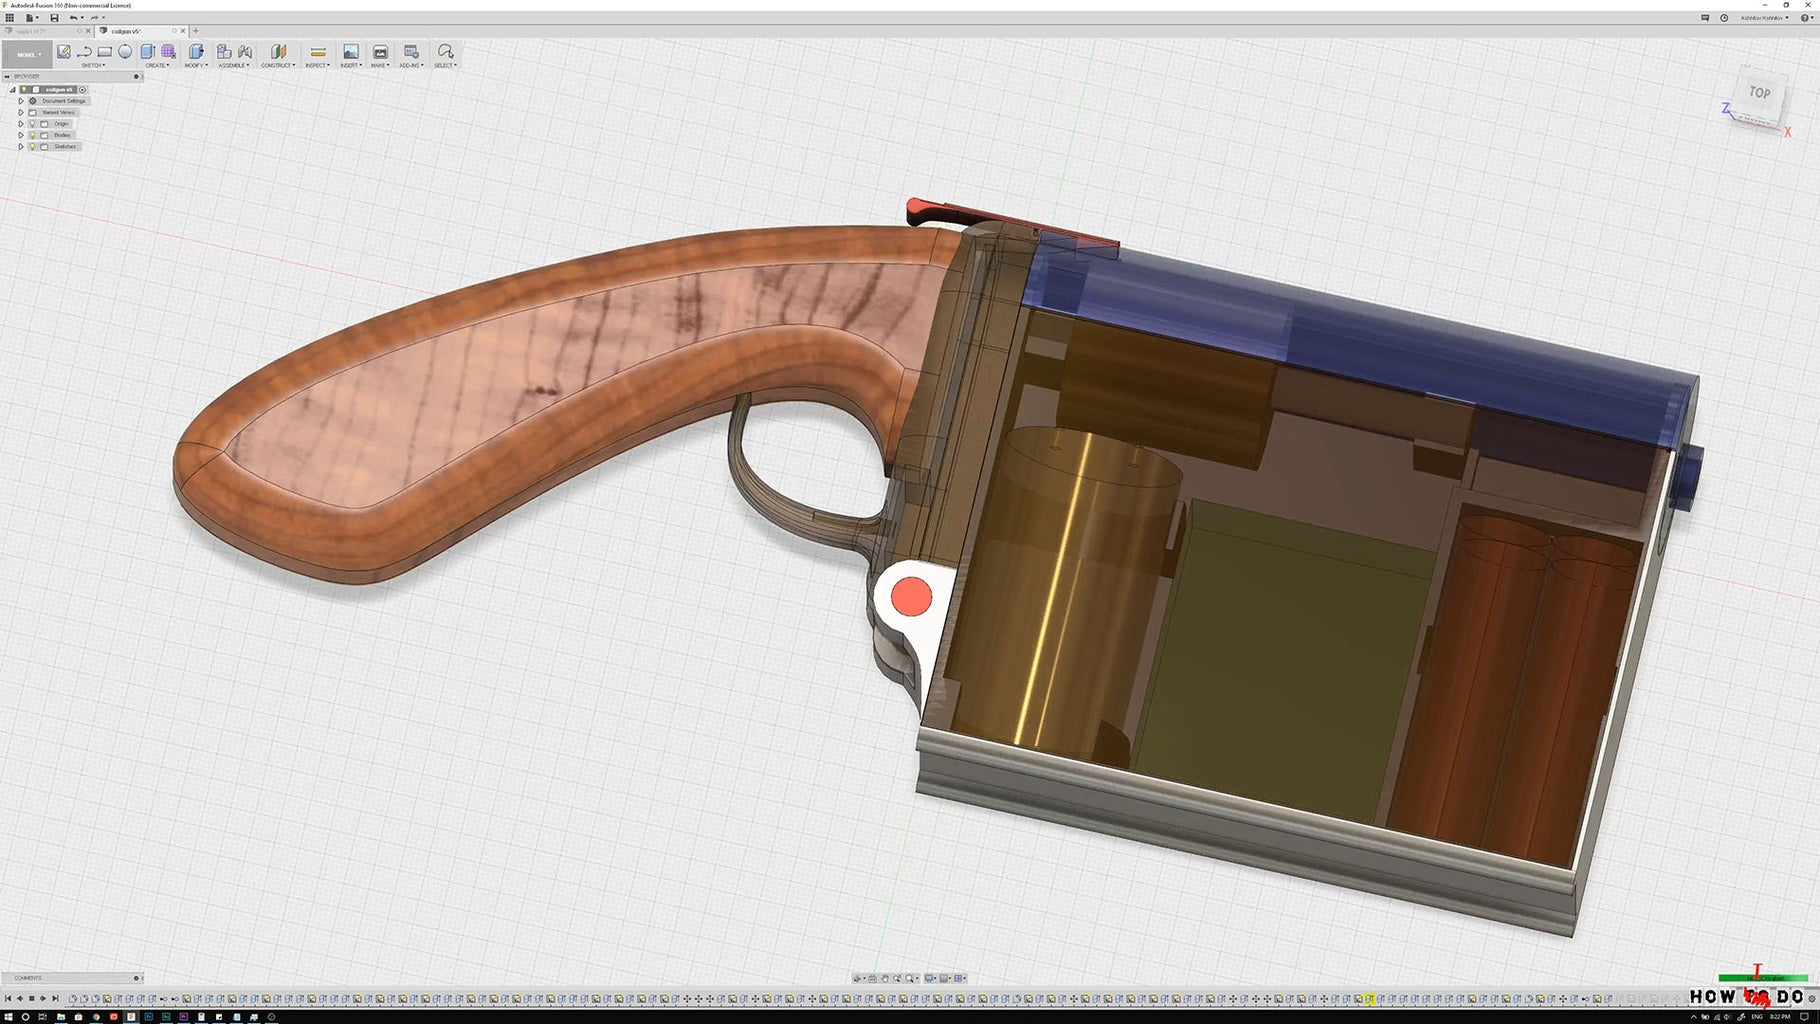 3D Model and Components